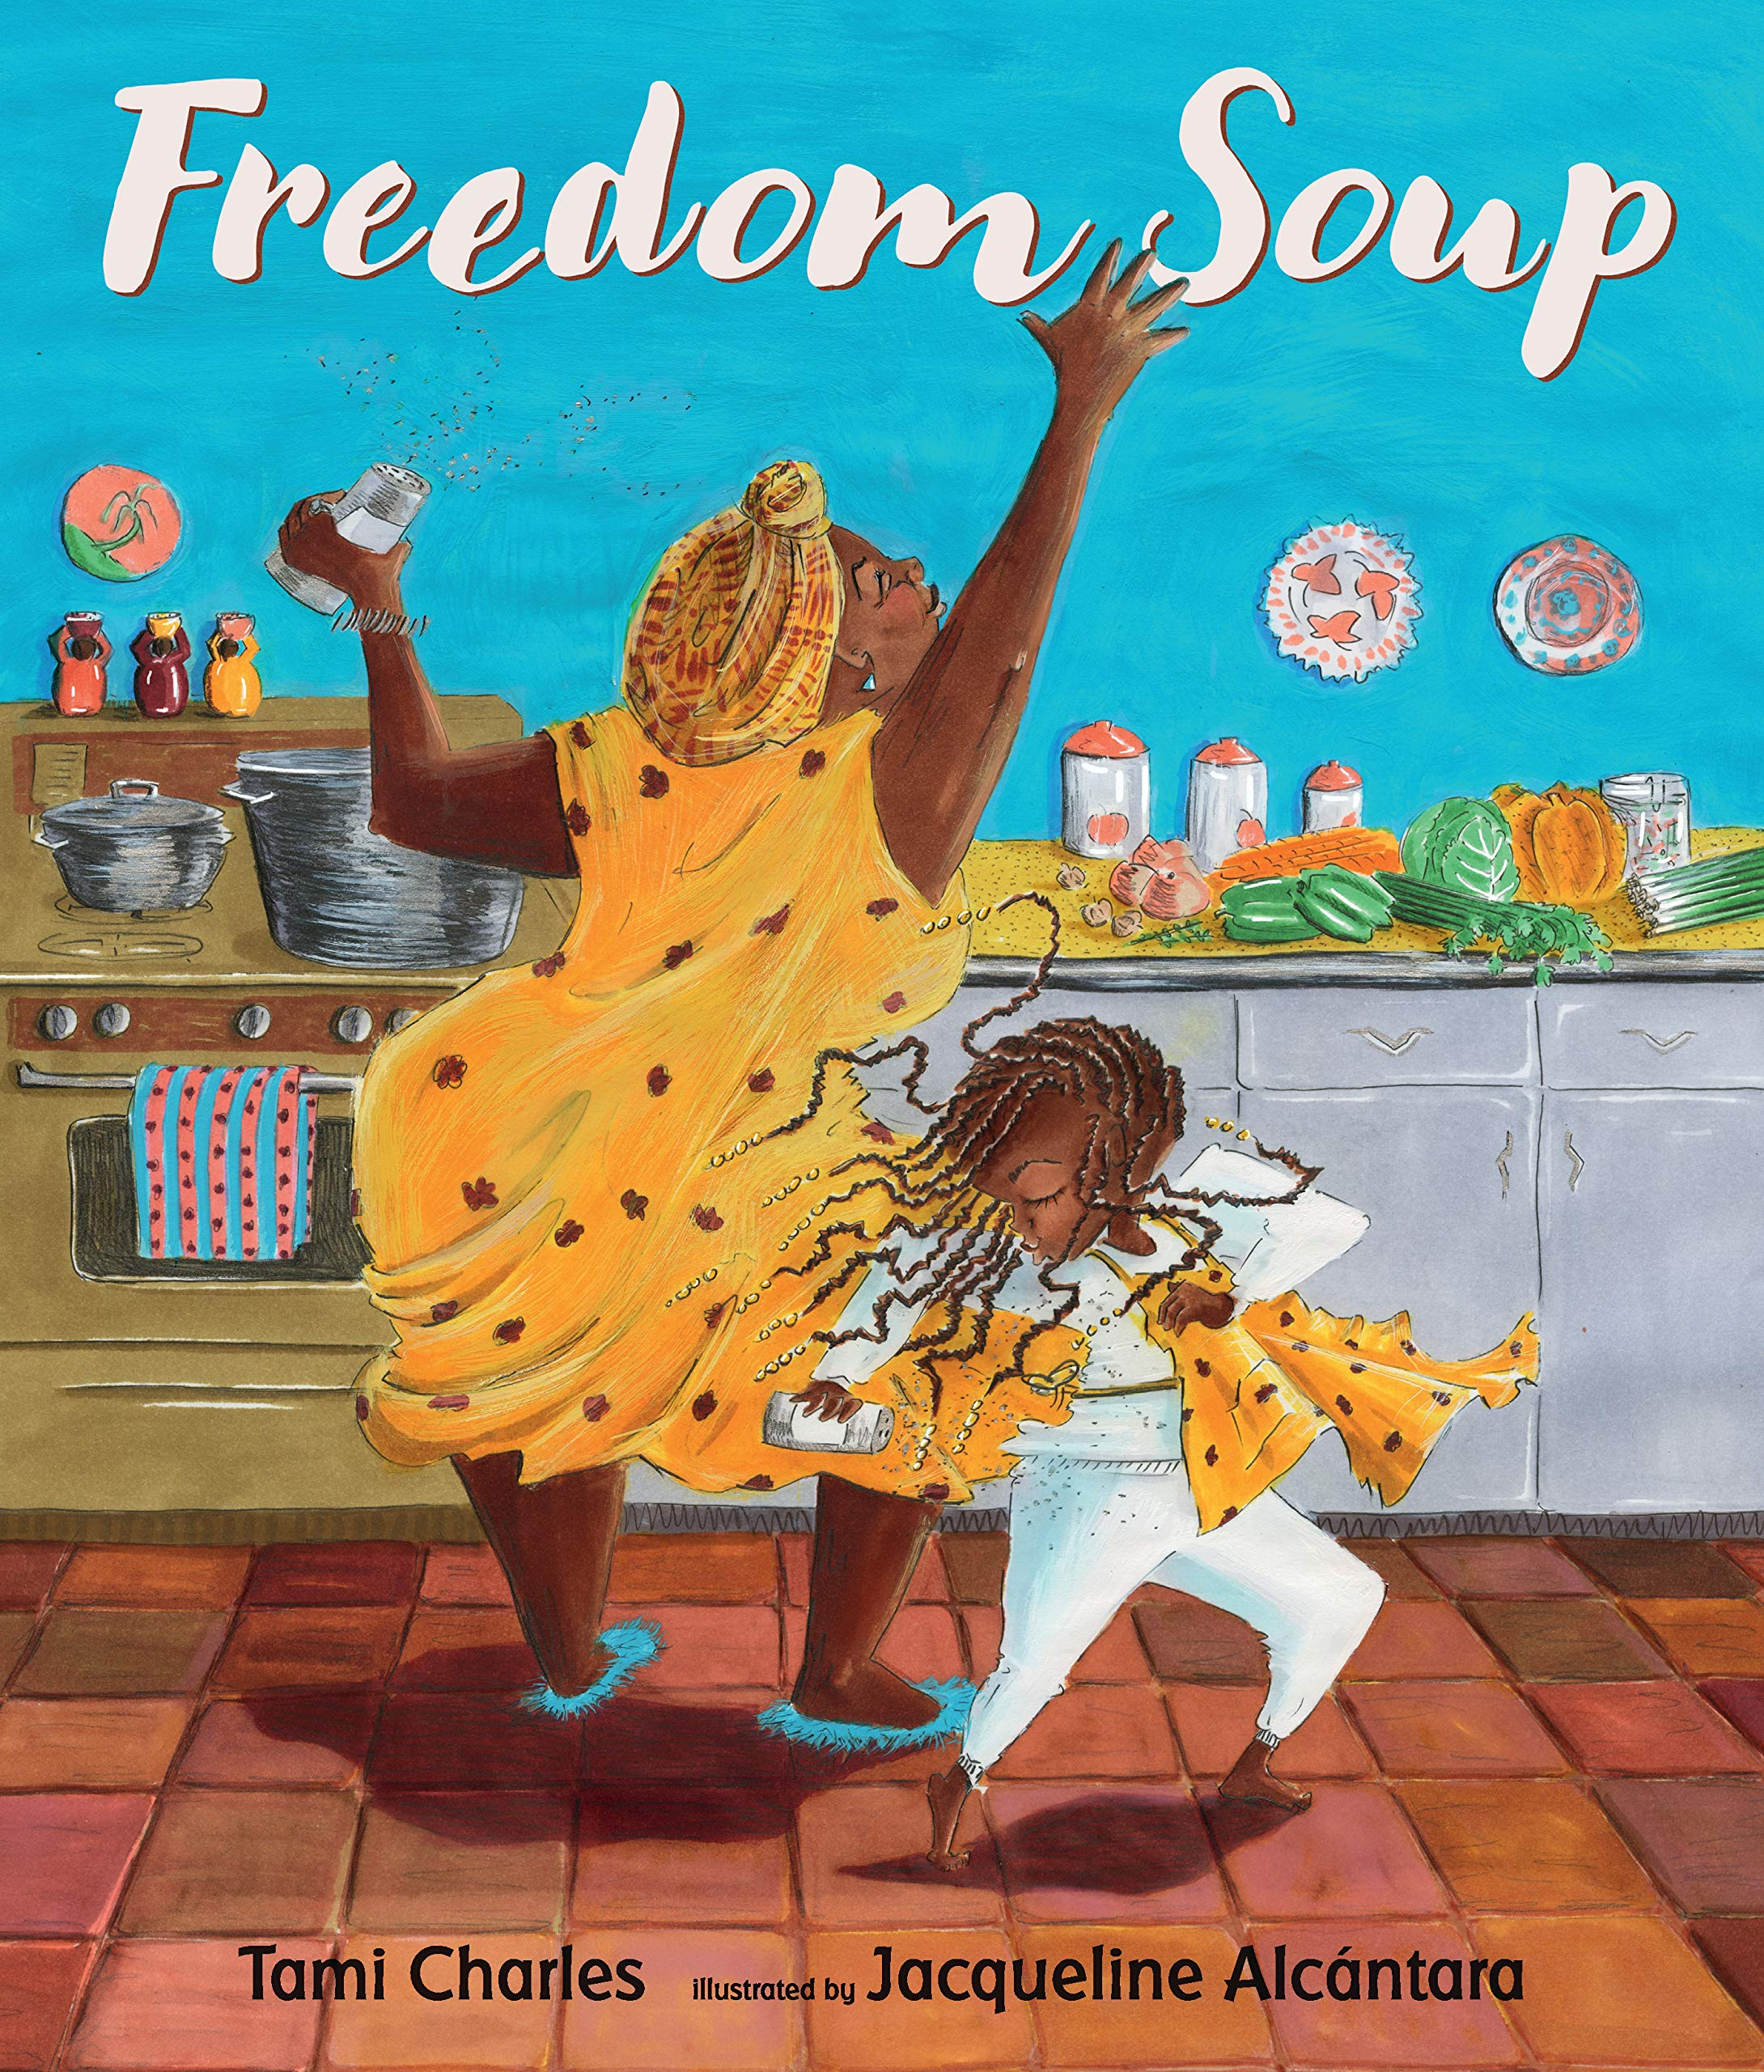 Freedom Soup, by Tami Charles